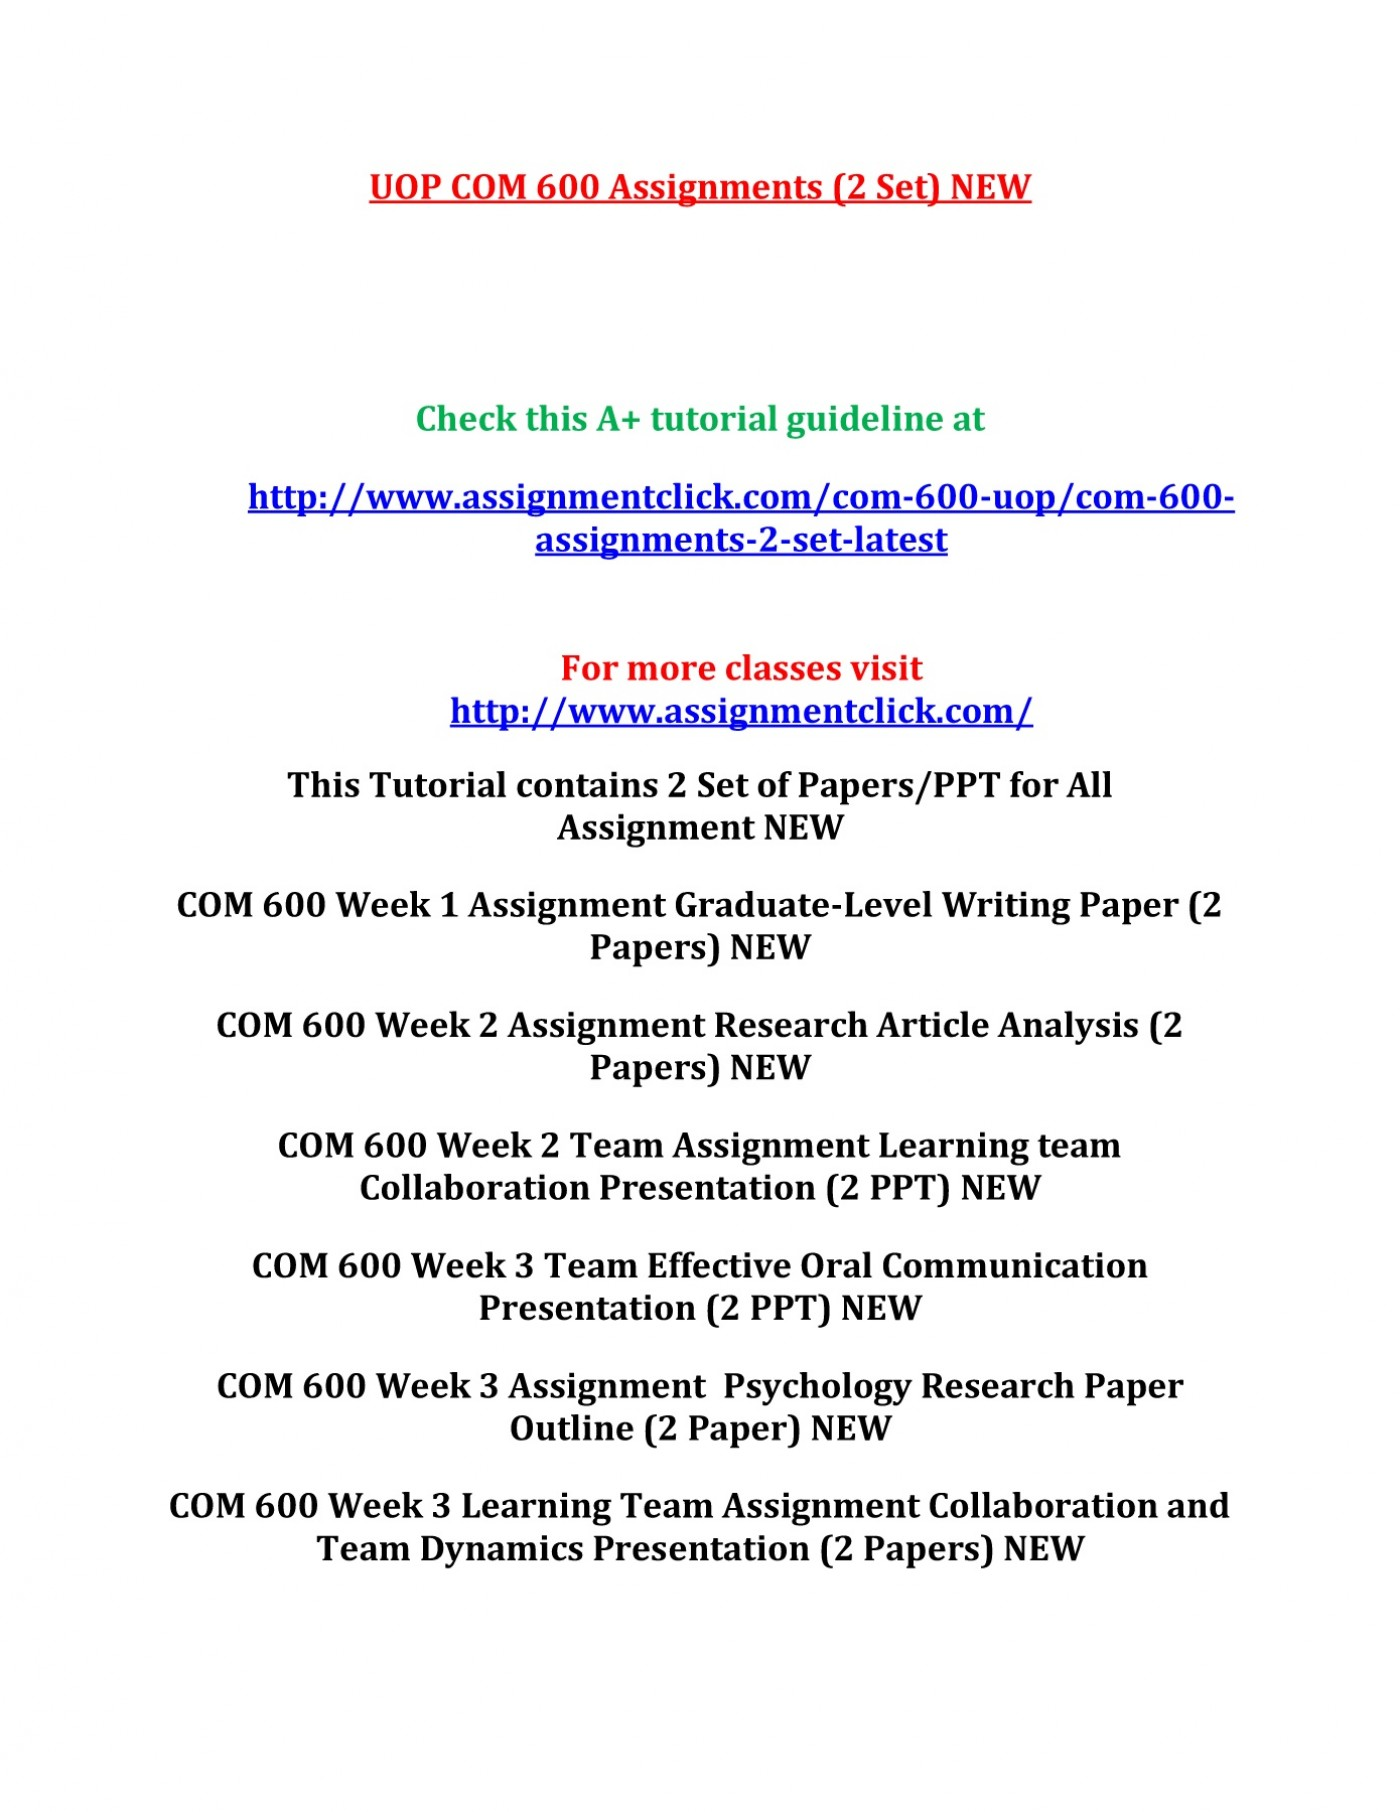 006 Research Paper Psychology Outline Com Striking 600 Com/600 1400